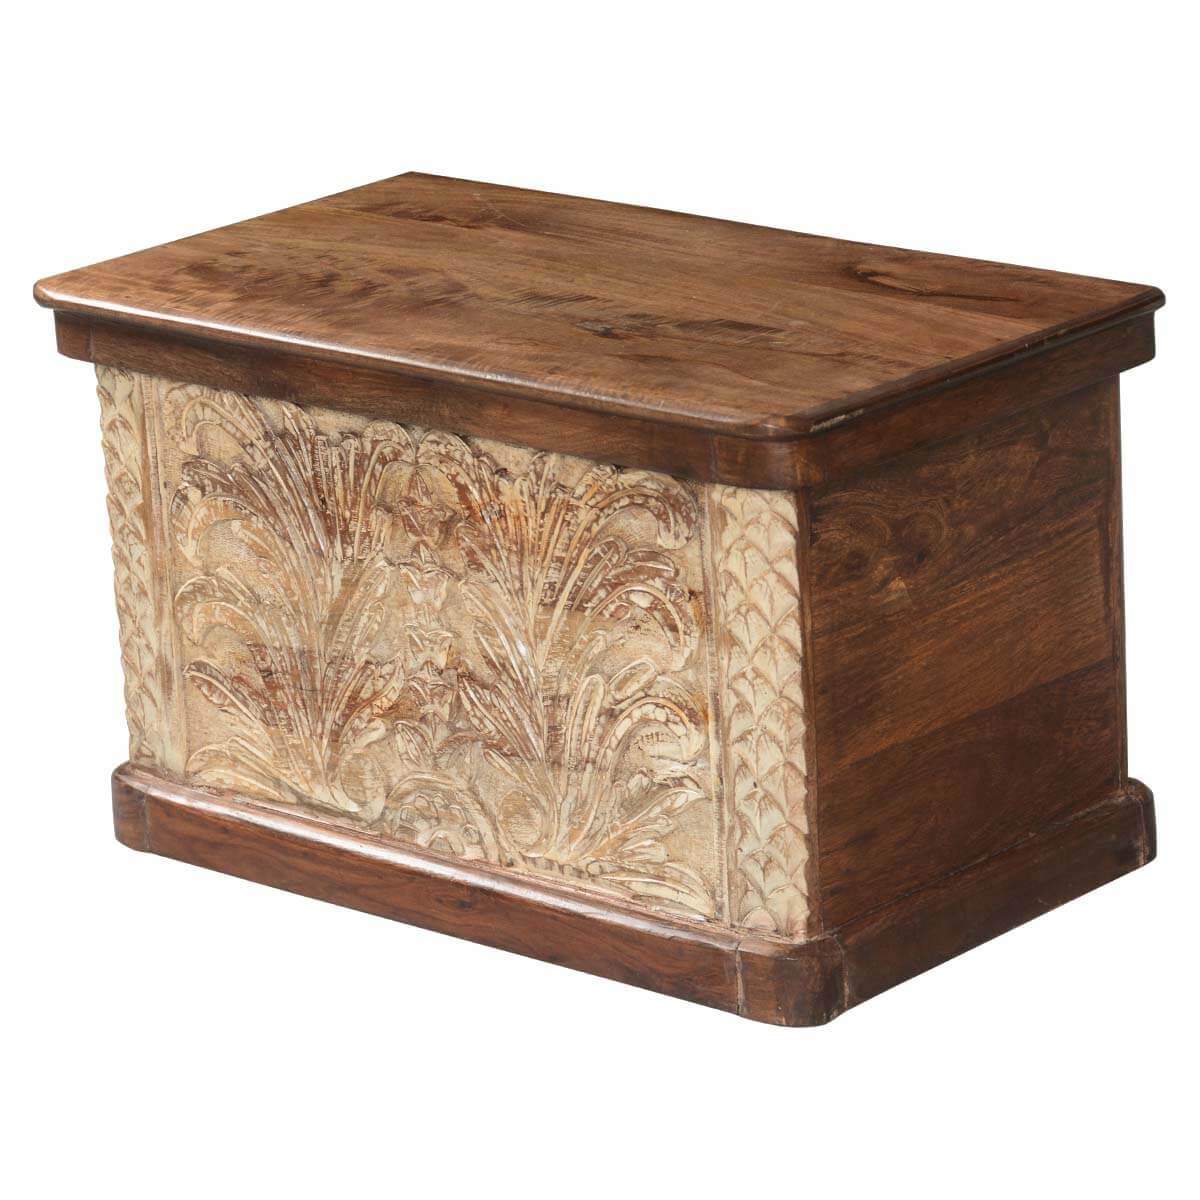 Wood Coffee Table With Storage Winter Ferns Solid Acacia Wood Coffee Table Storage Chest